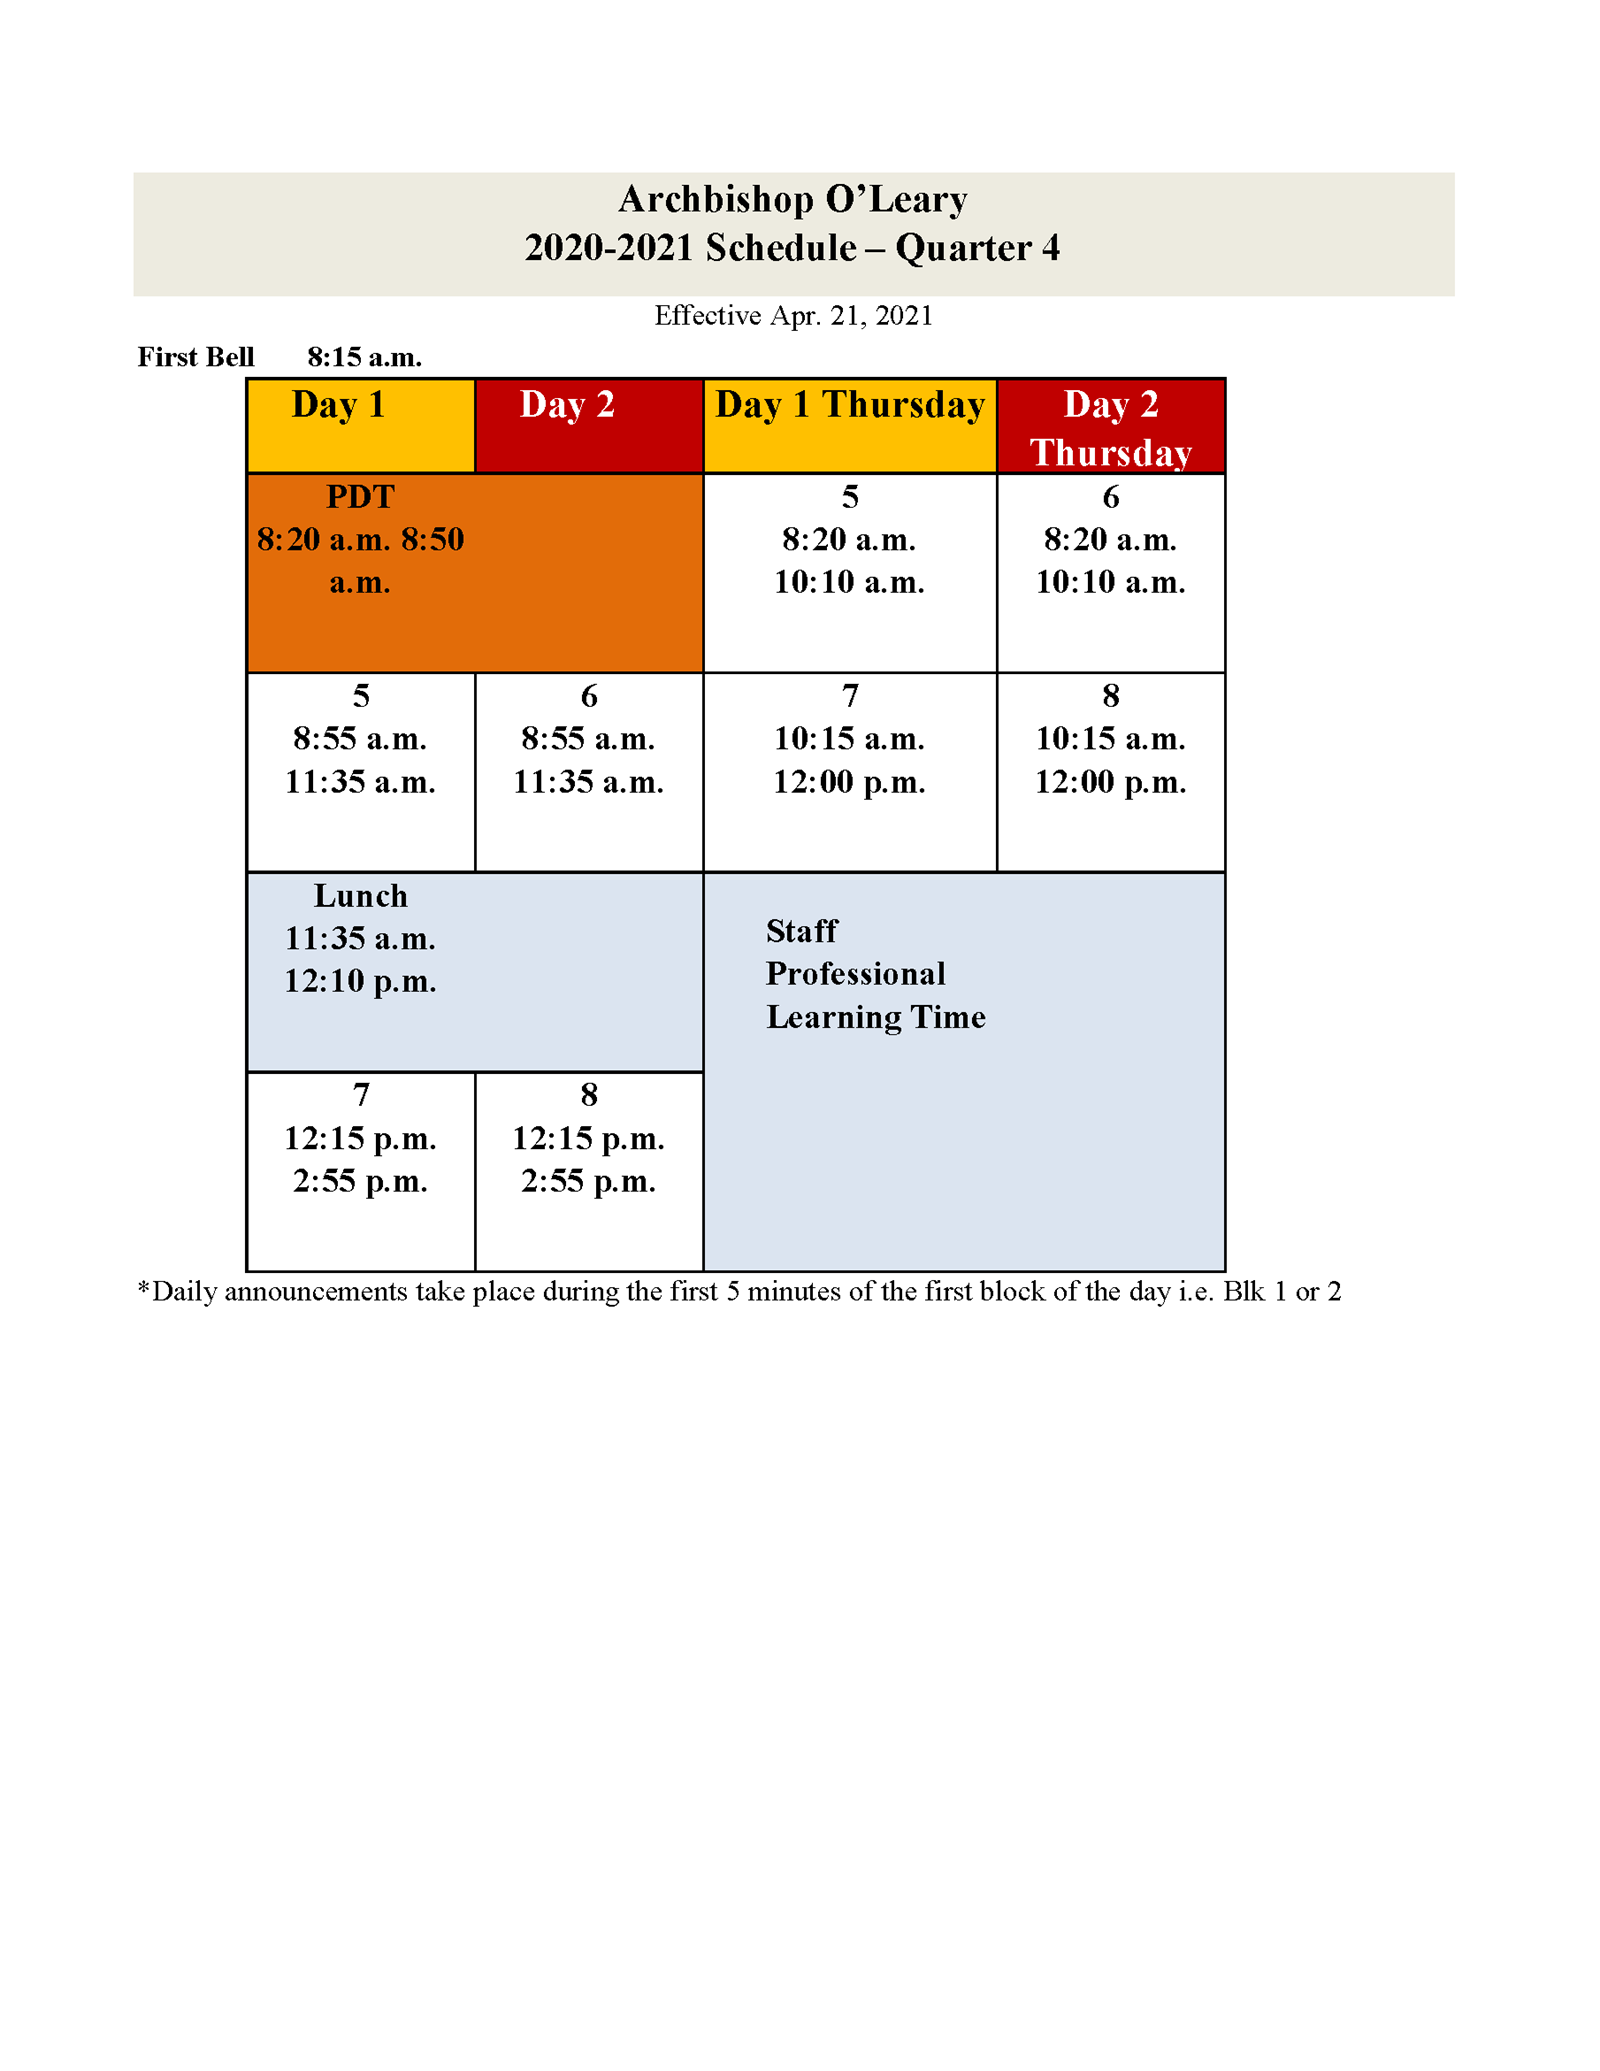 dailySchedule_Page_4.png